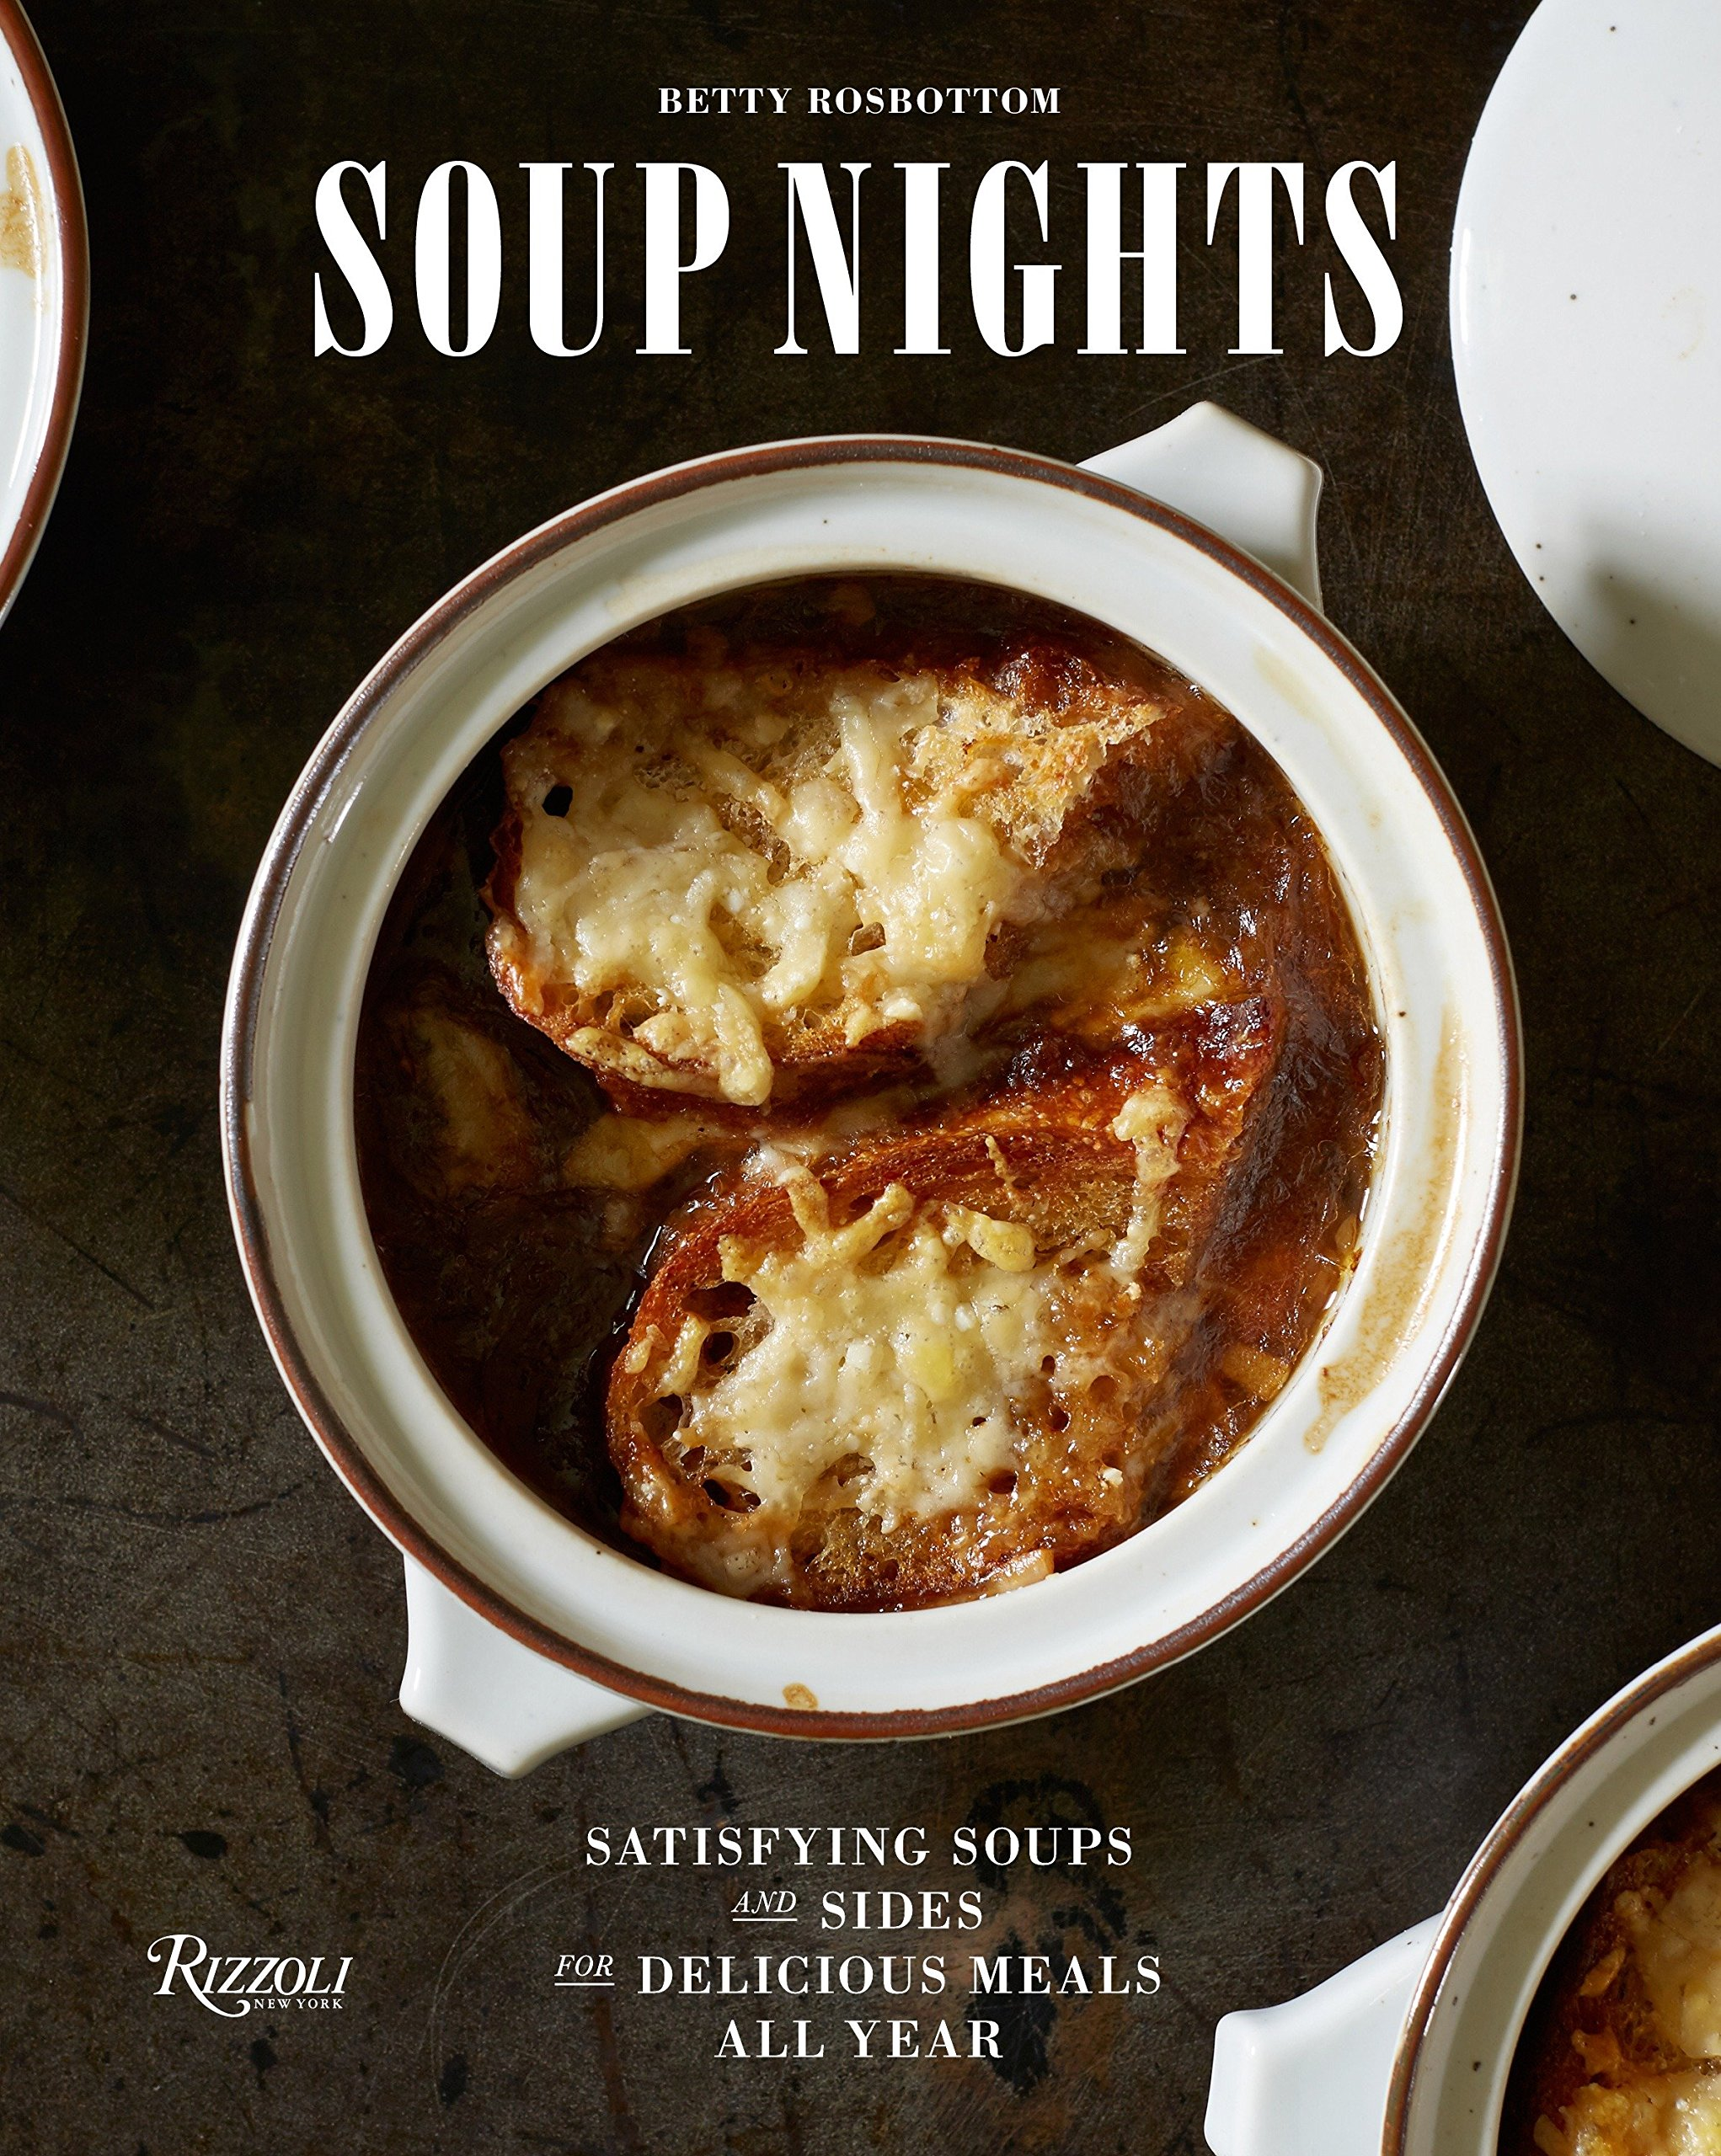 Soup Nights: Satisfying Soups and Sides for Delicious Meals All Year